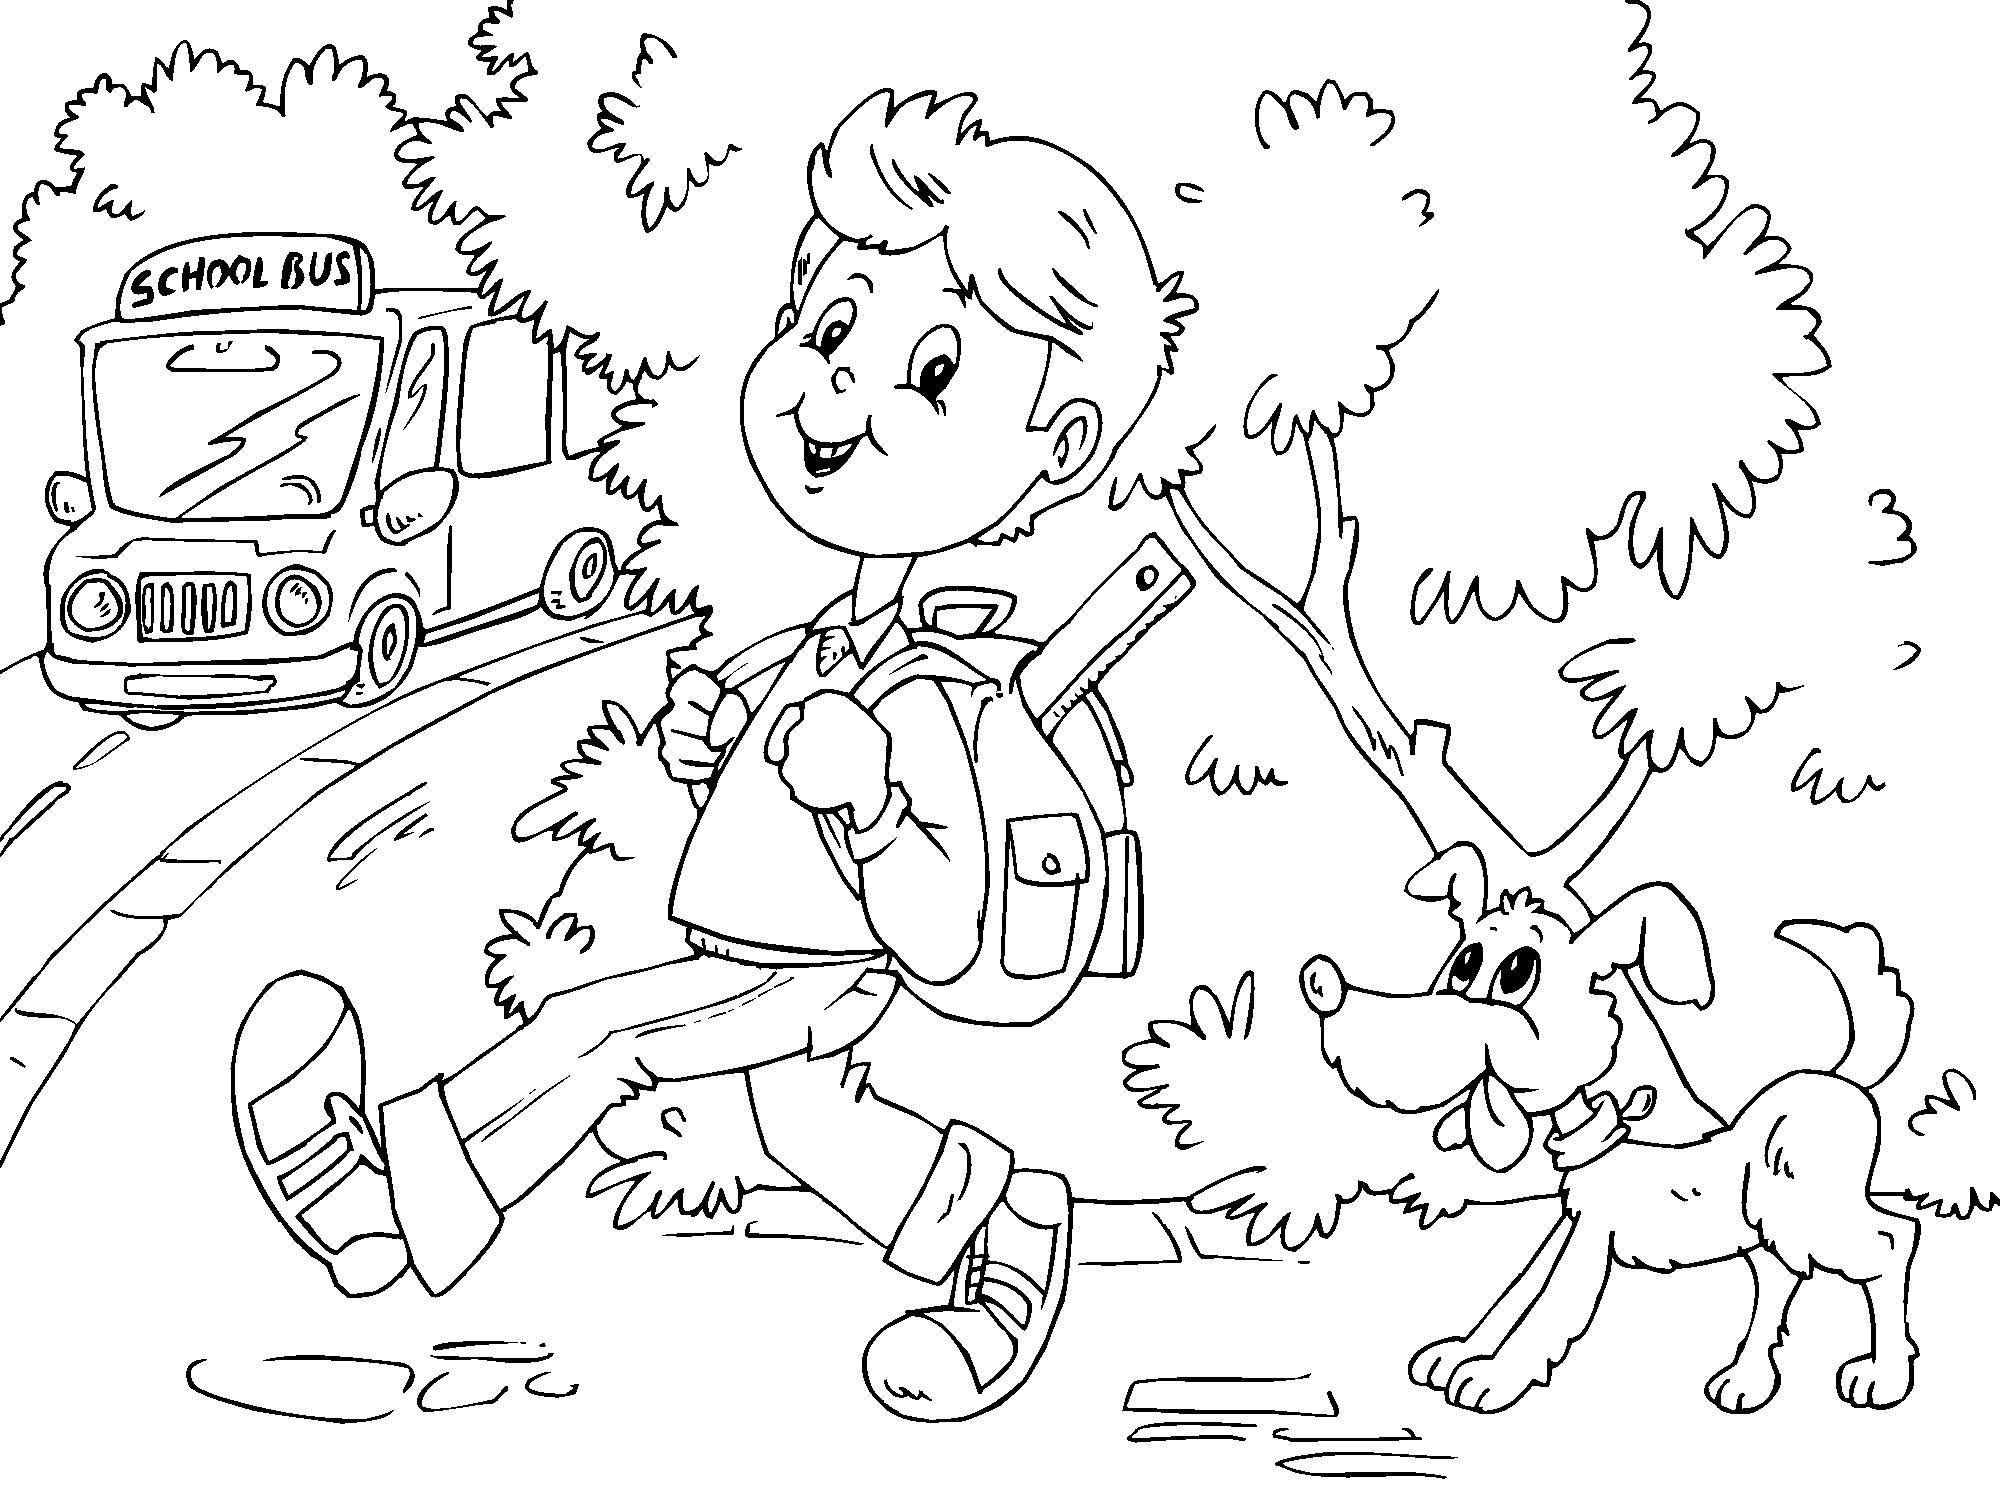 elementary school coloring pages - photo#48